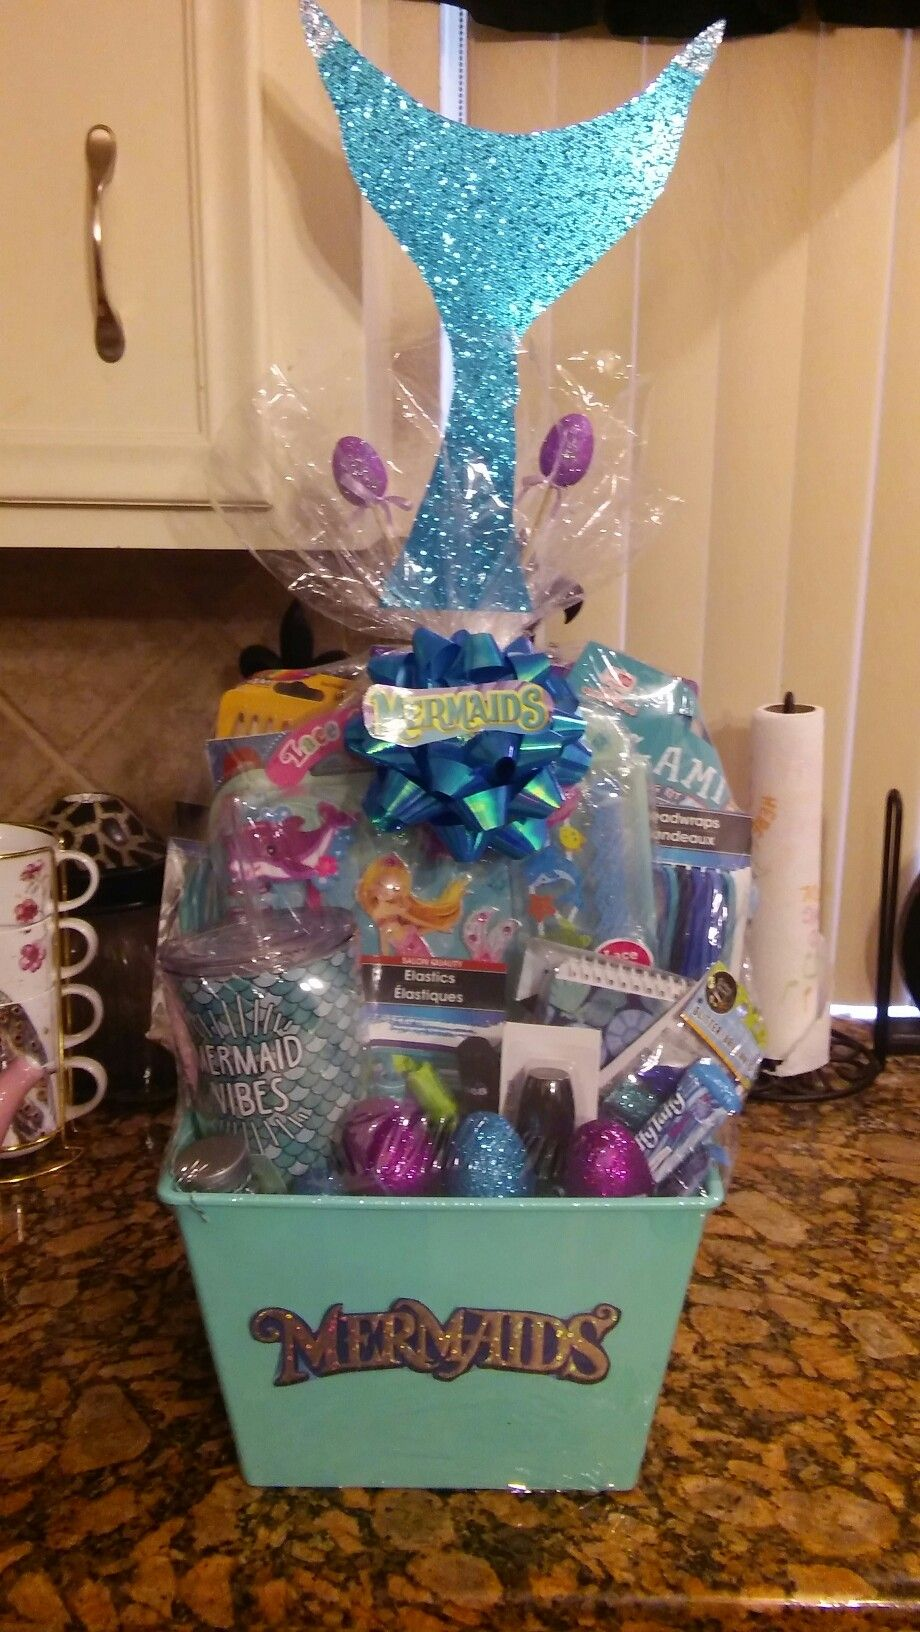 Mermaid easter basket gift baskets pinterest easter baskets mermaid easter basket negle Gallery